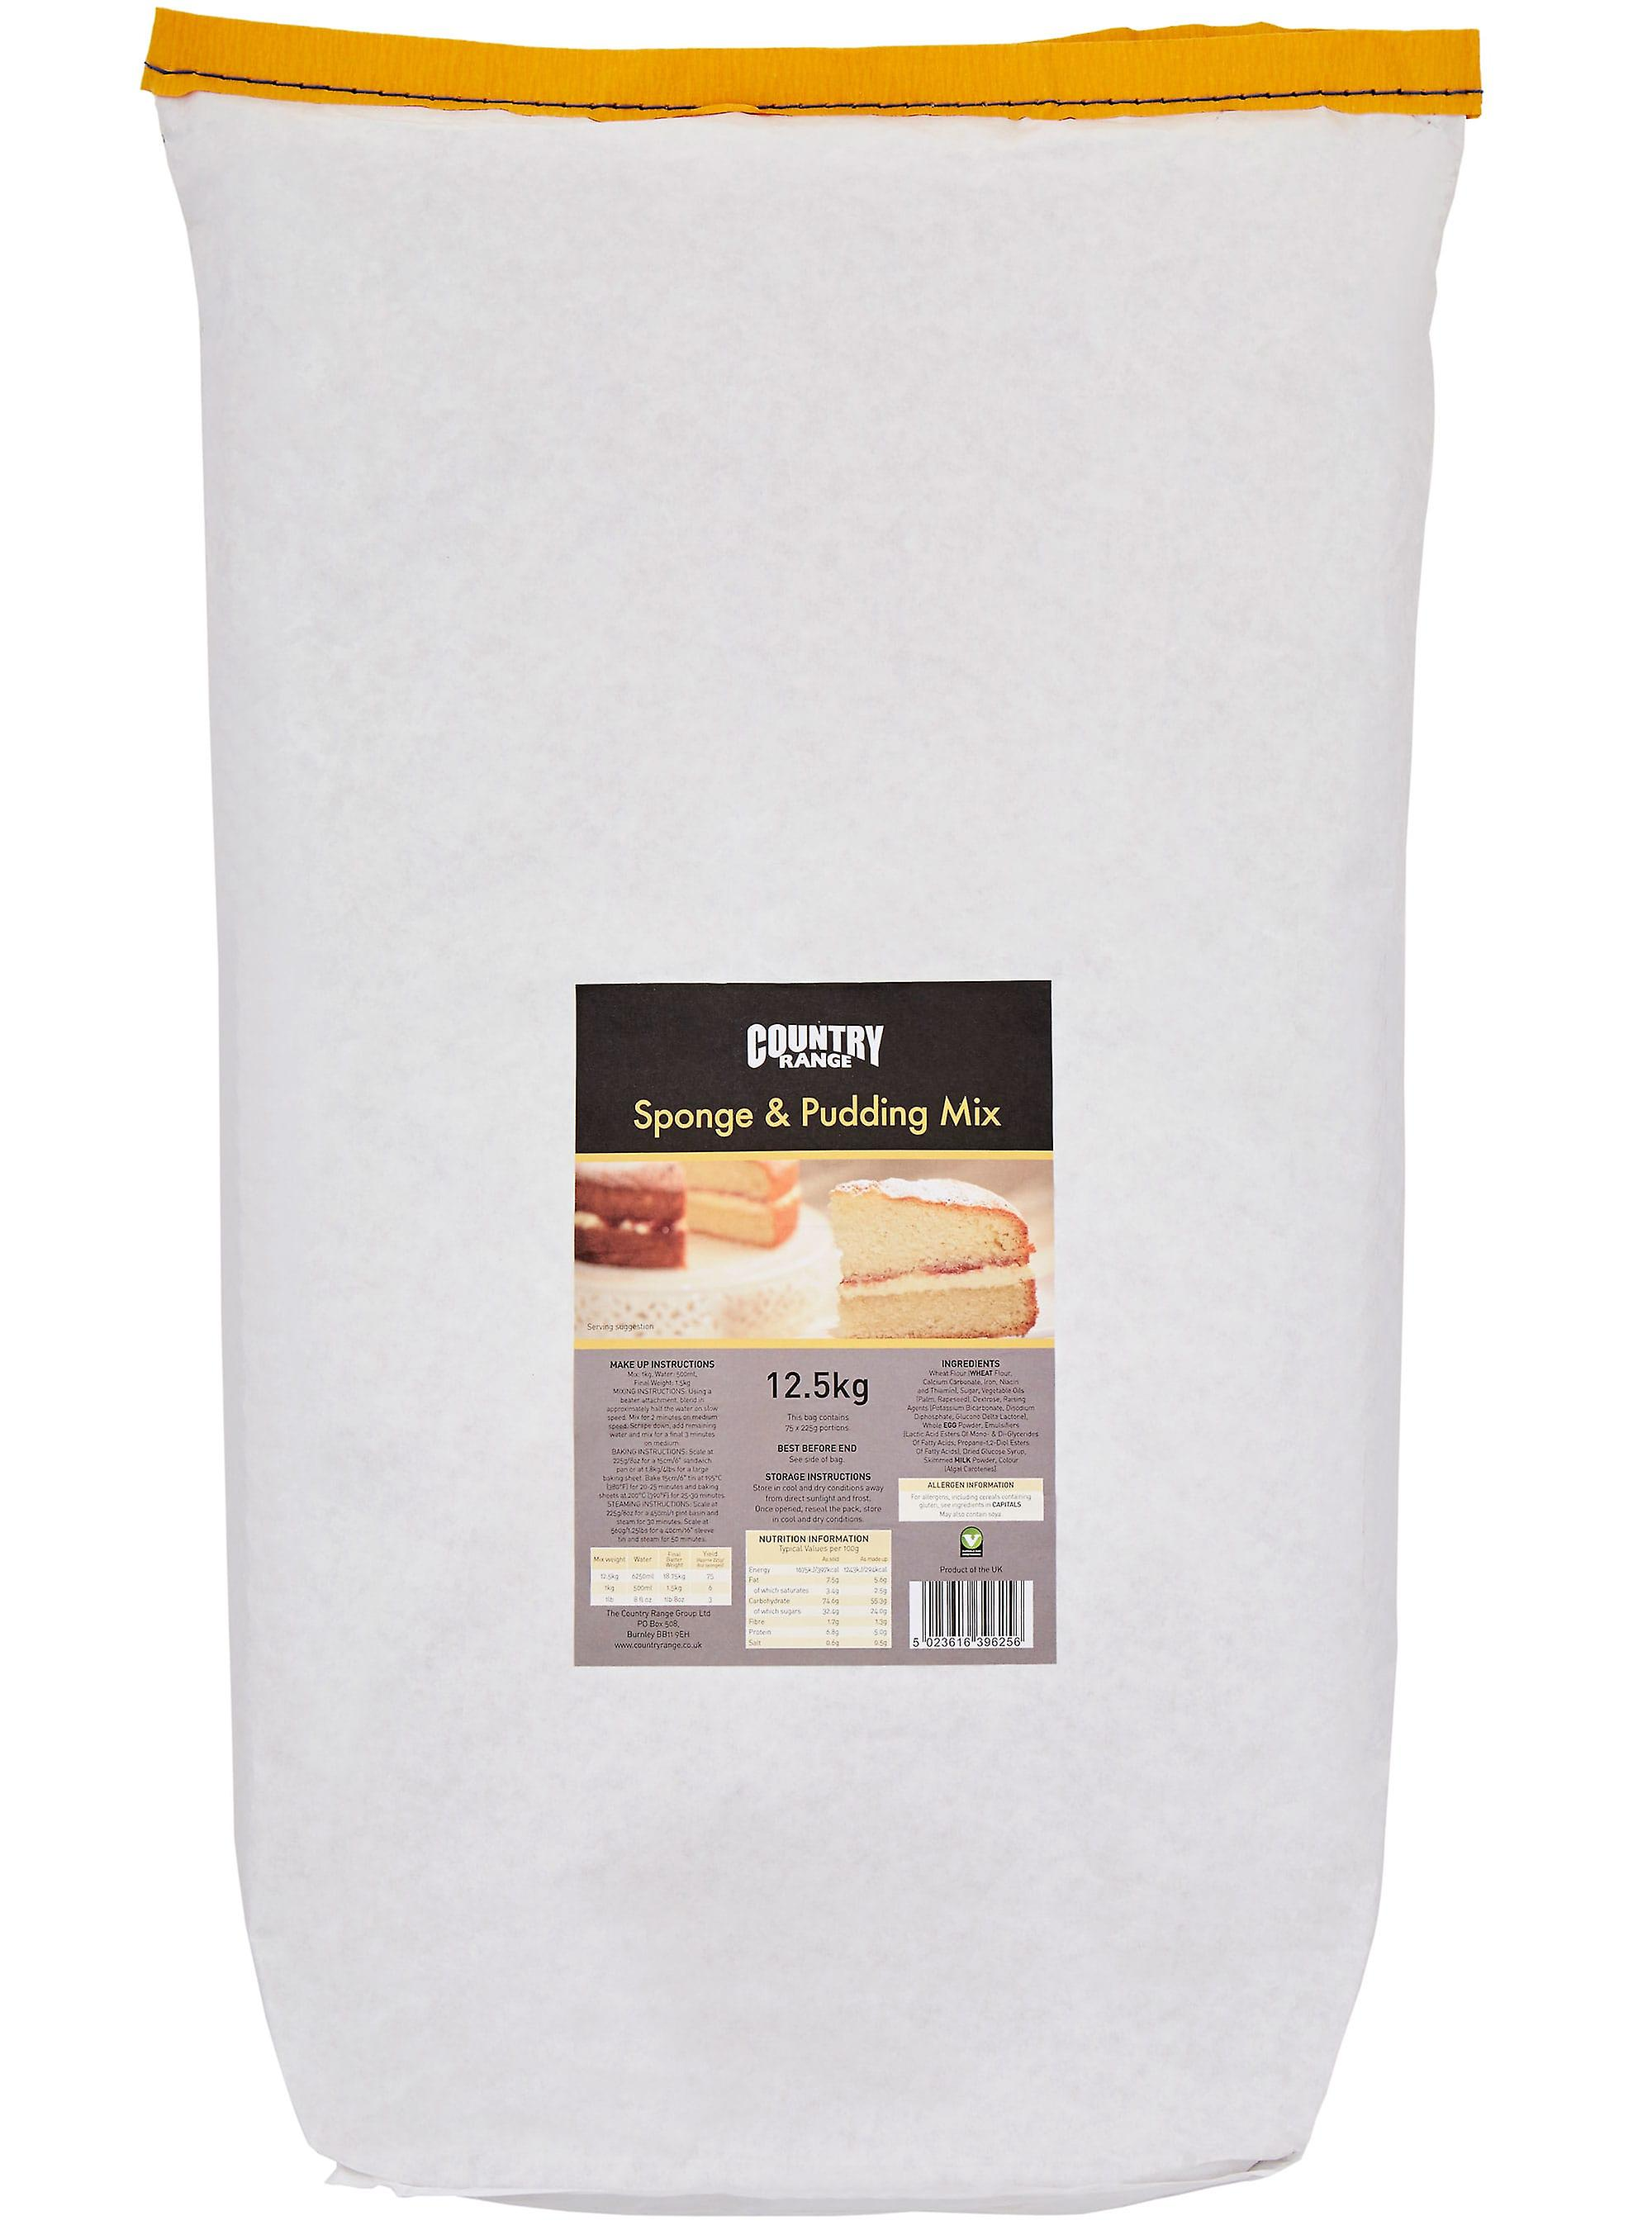 Country Range Sponge and Pudding Mix